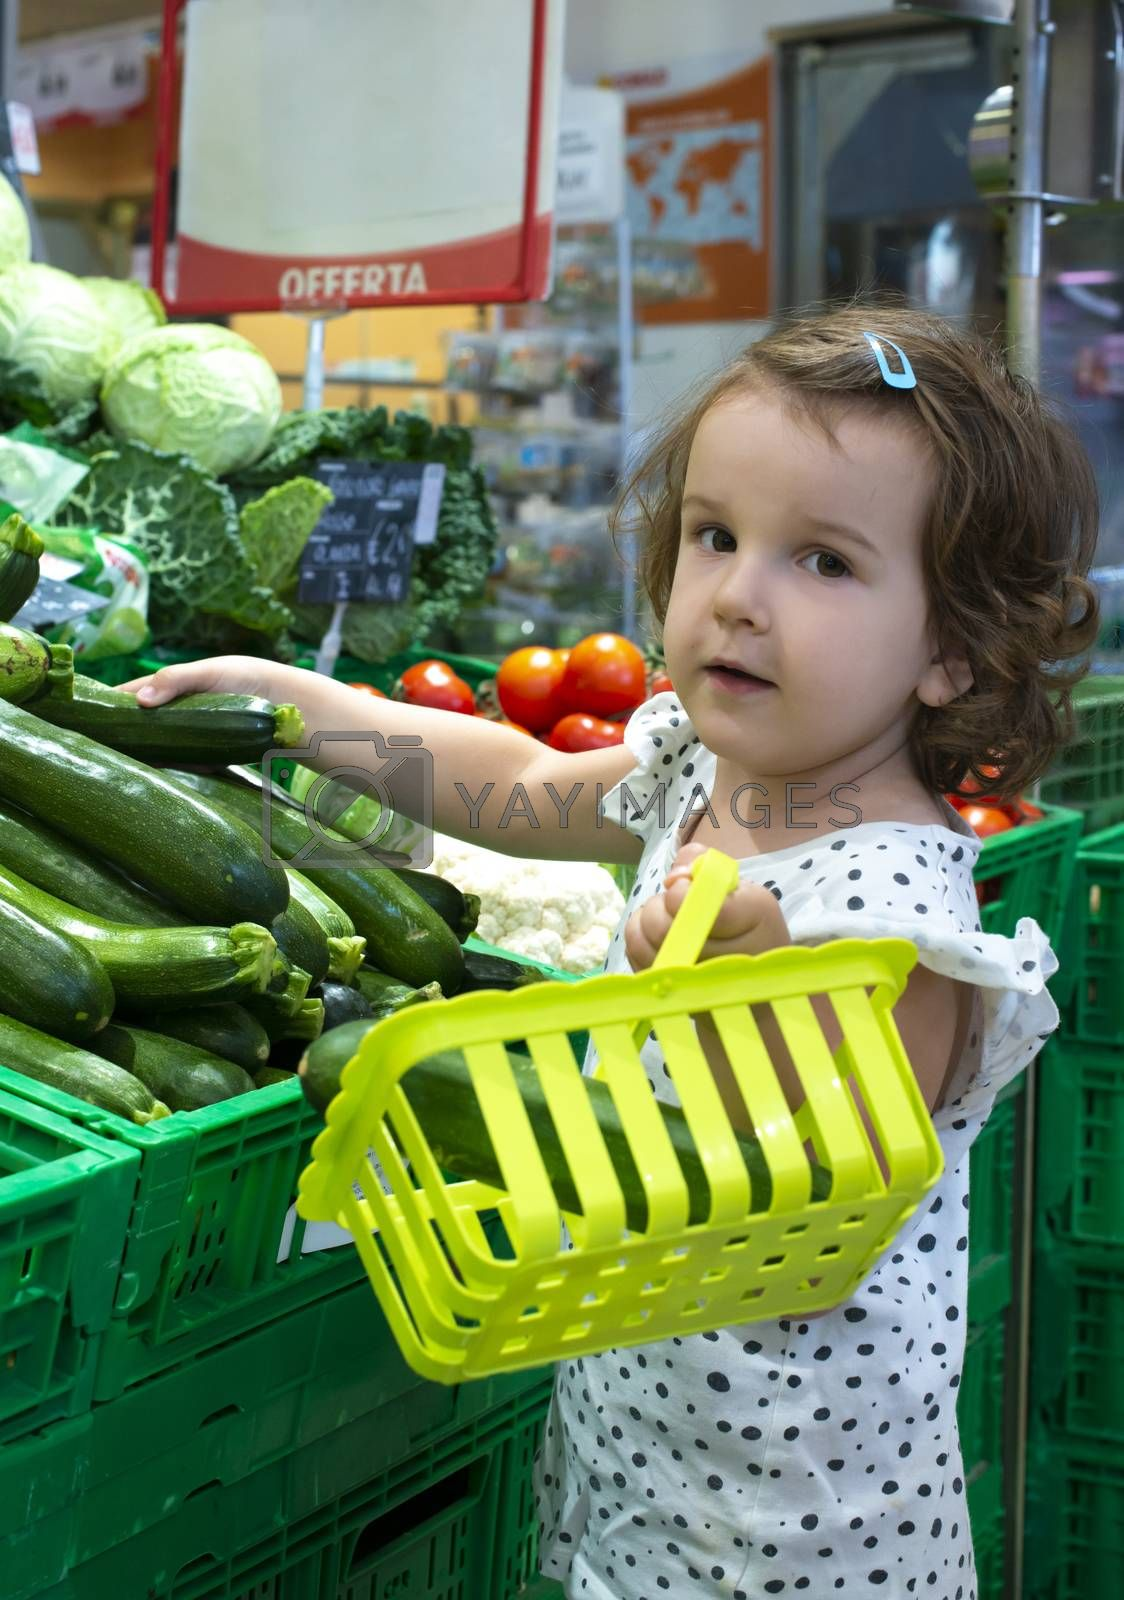 Little girl buying zucchini in supermarket. Looking at the camera. Child hold small basket in supermarket and select vegetables. Concept for healthy eating for children.